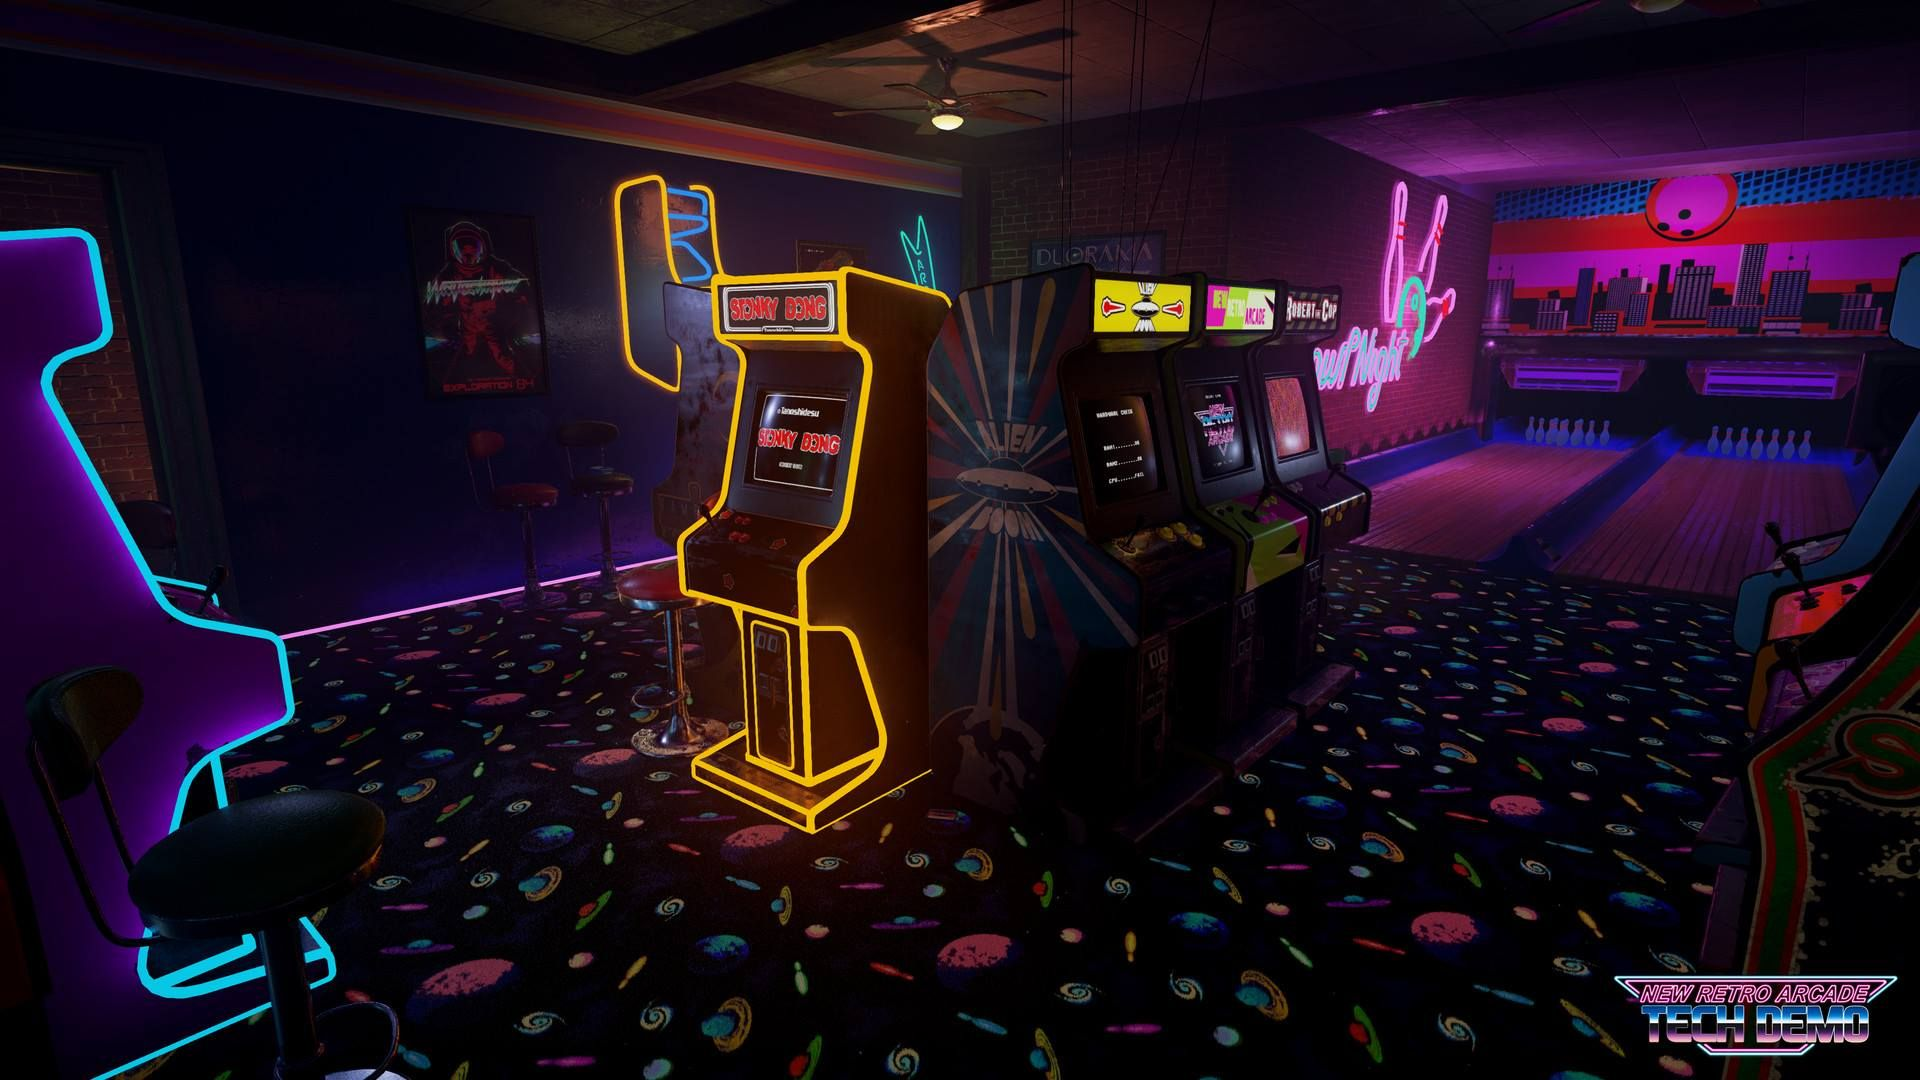 New Retro Arcade Launches With Htc Vive Support On Steam Retro Arcade Games Retro Arcade Arcade